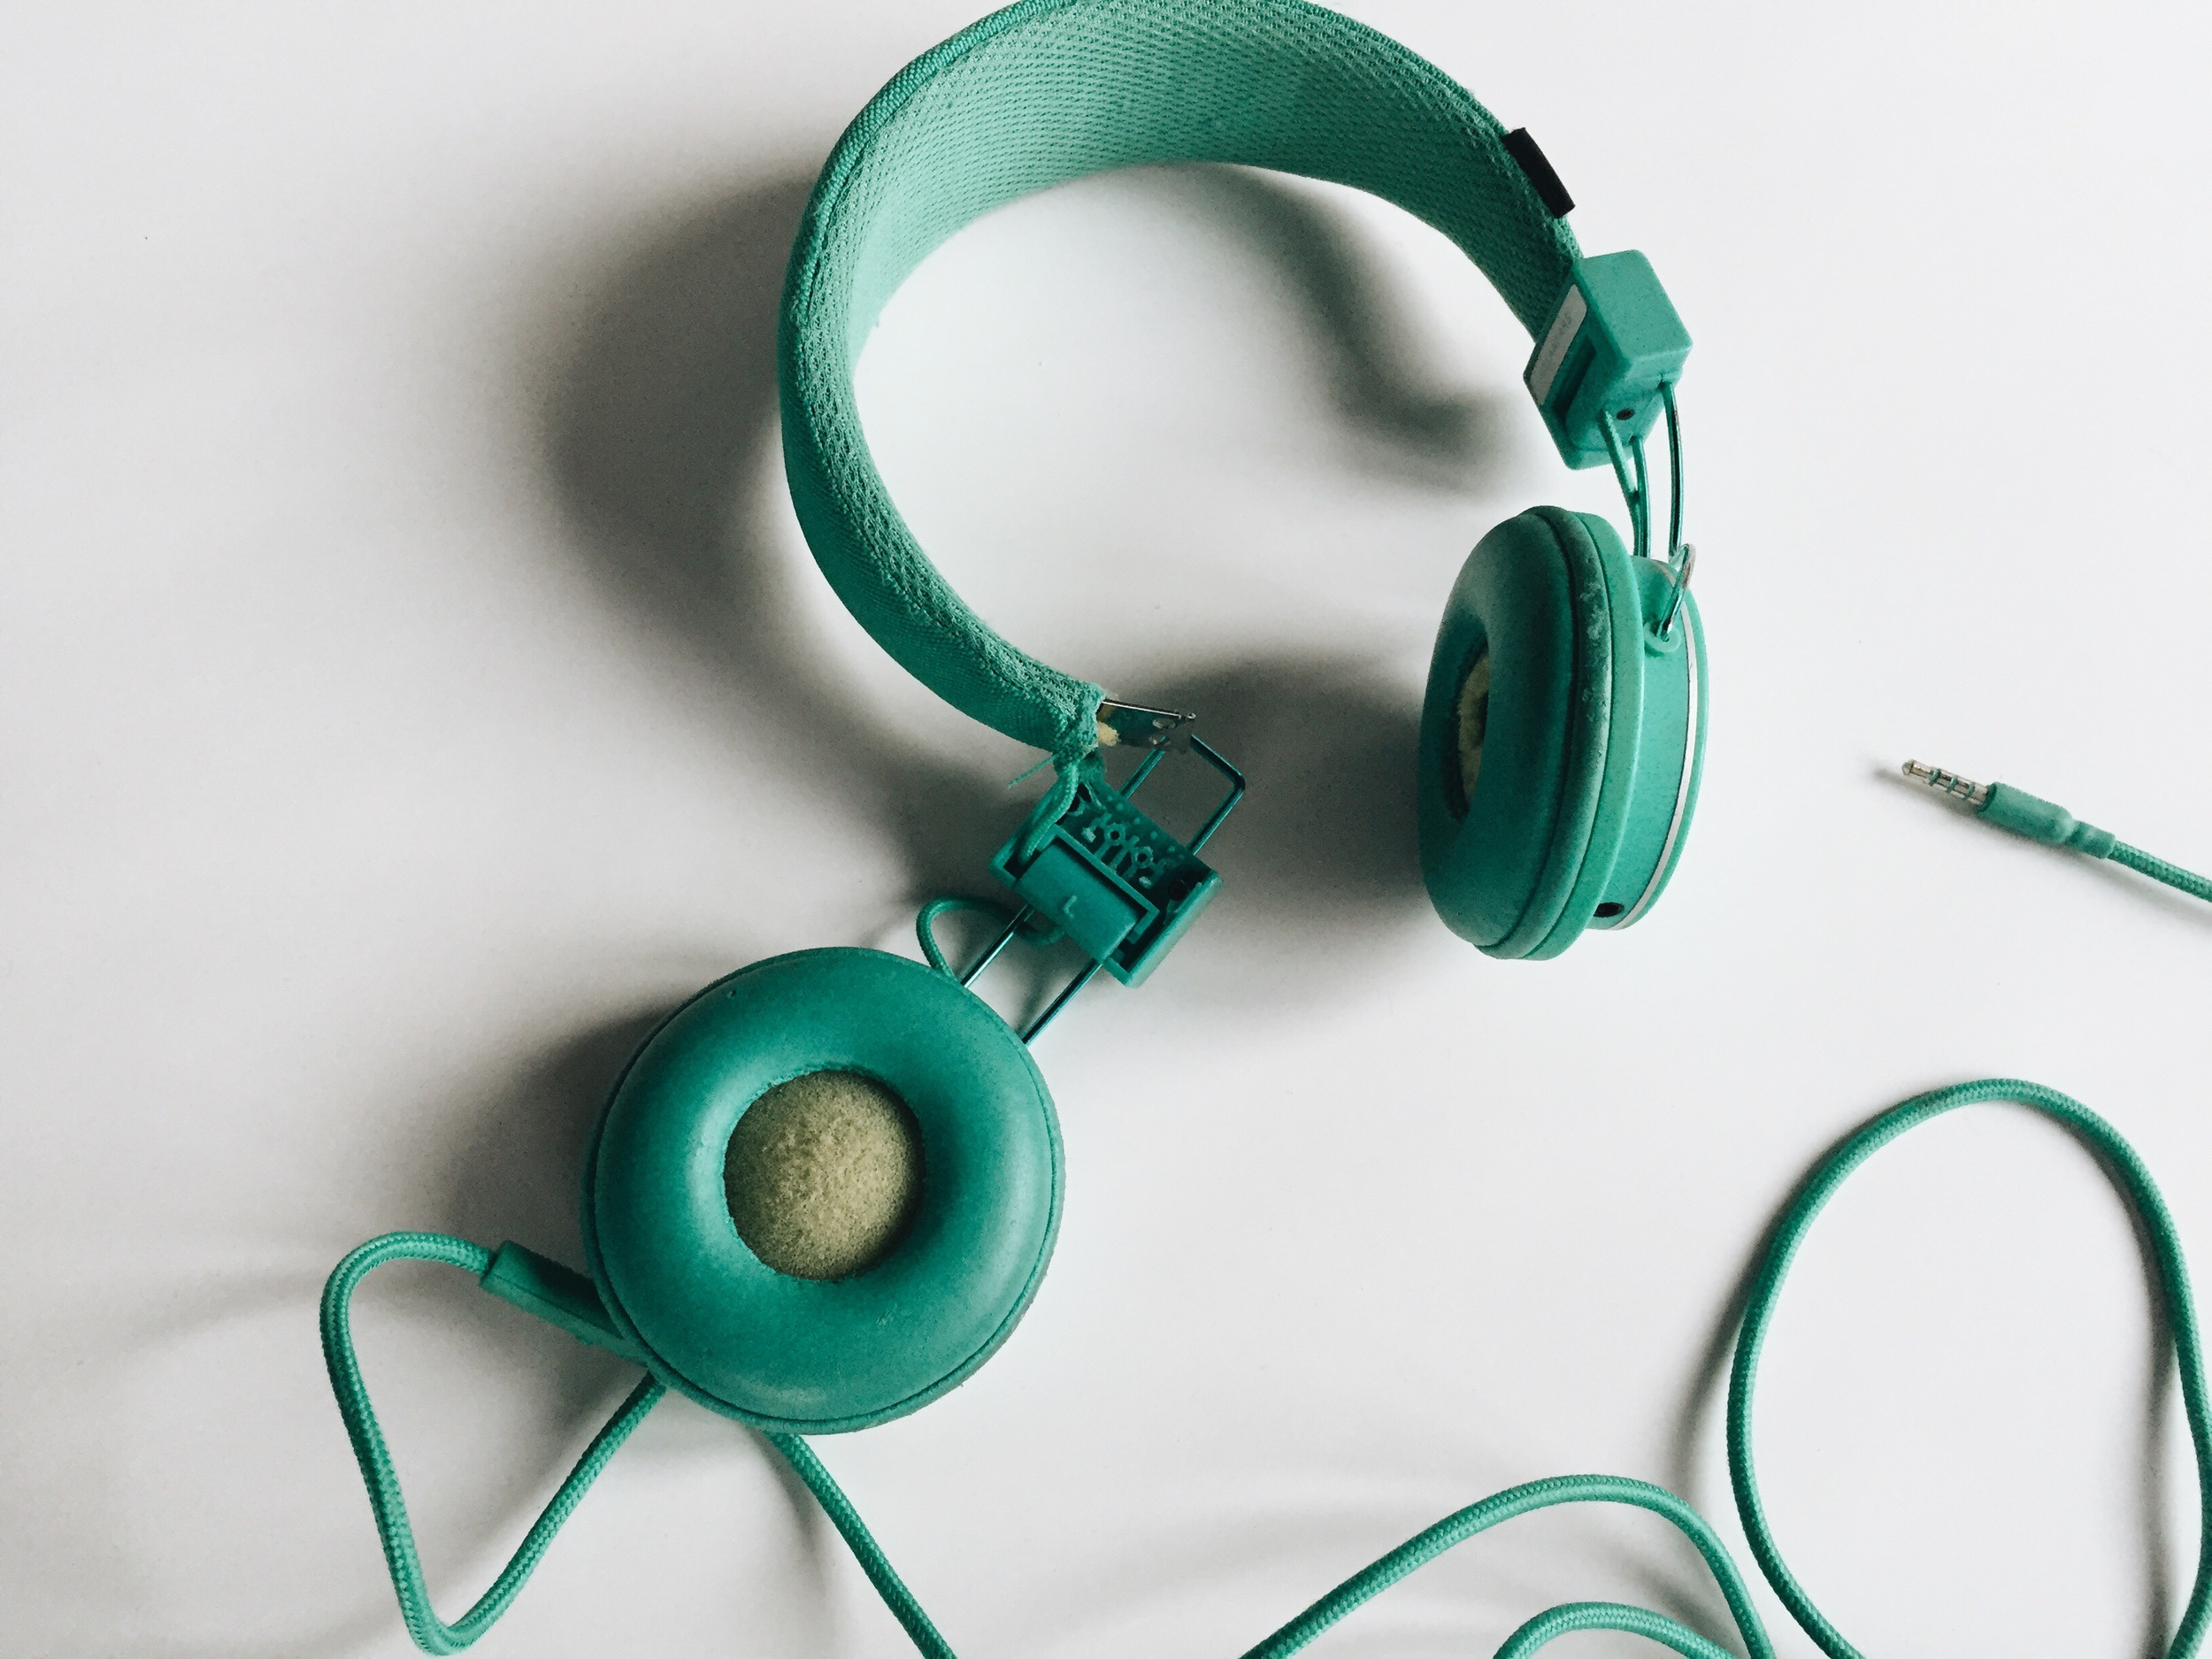 I took this picture years ago. I no longer have these headphones fyi.